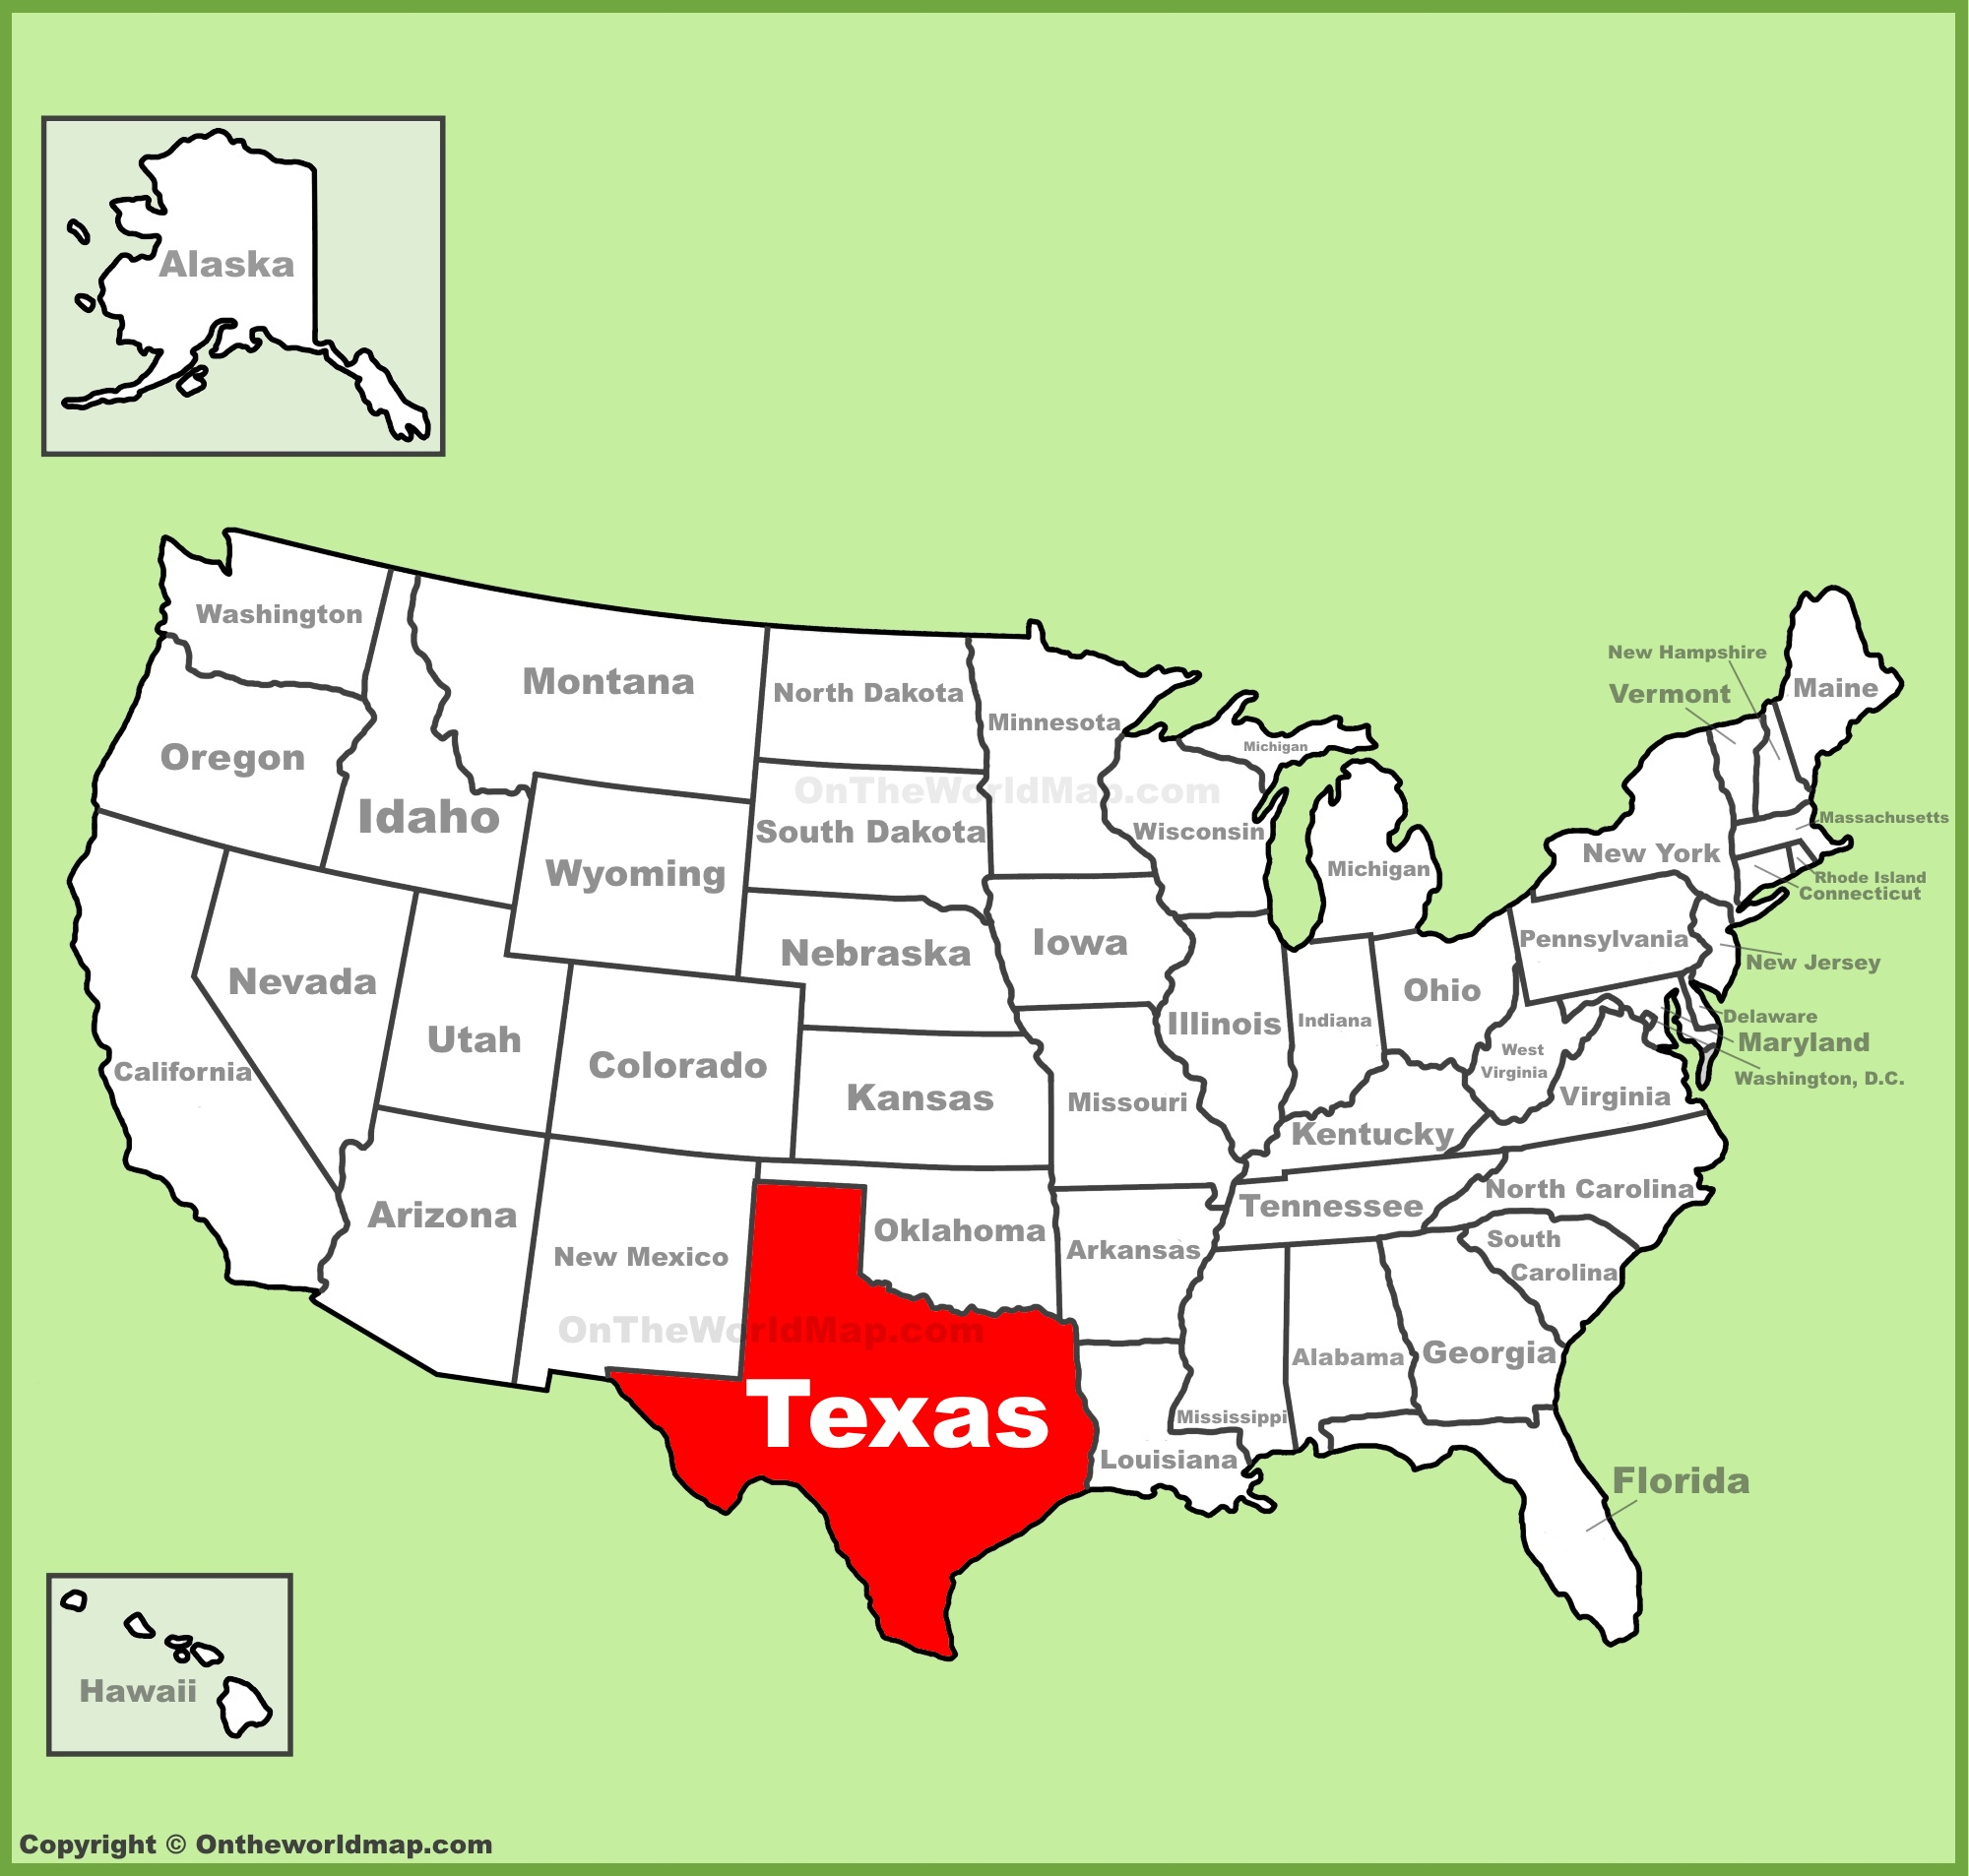 Texas State Maps USA Maps Of Texas TX - Texas map of usa